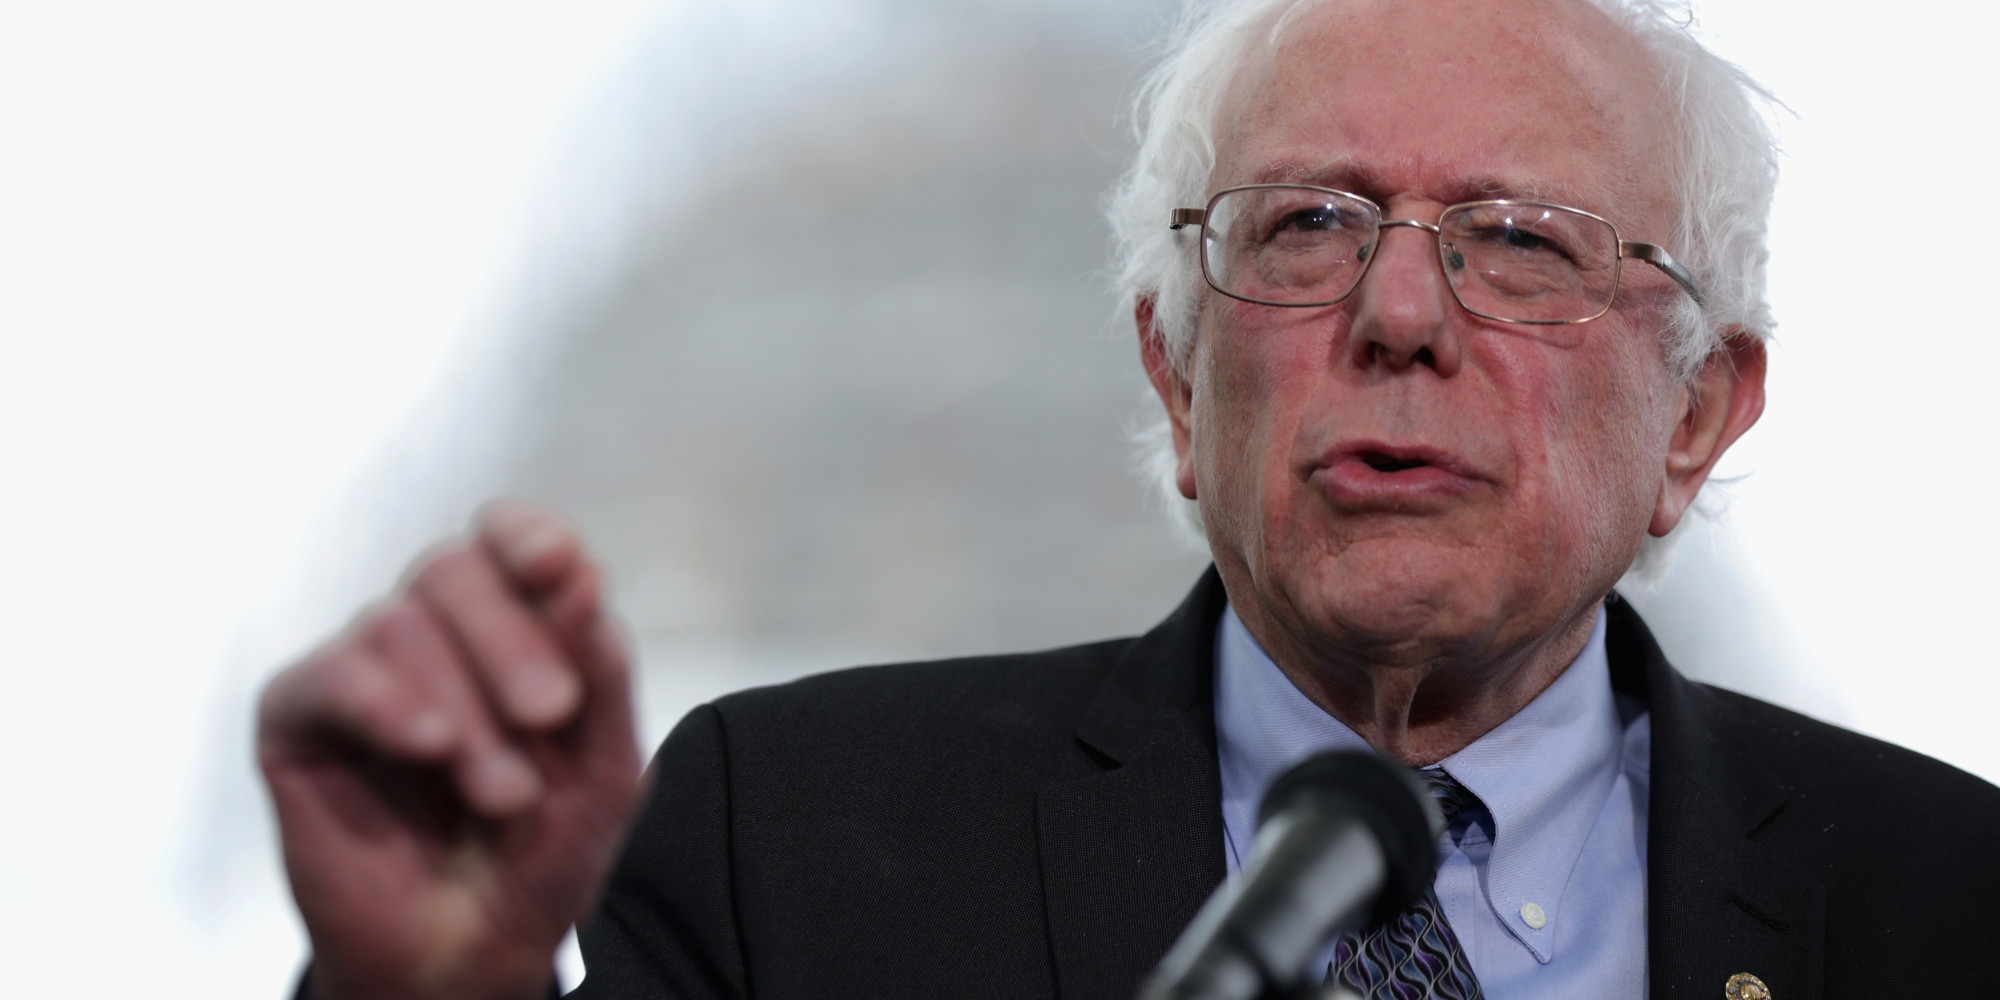 Bernie Sanders Wallpaper Download: Hillary Clinton Has A 'White Liberal' Problem That Will